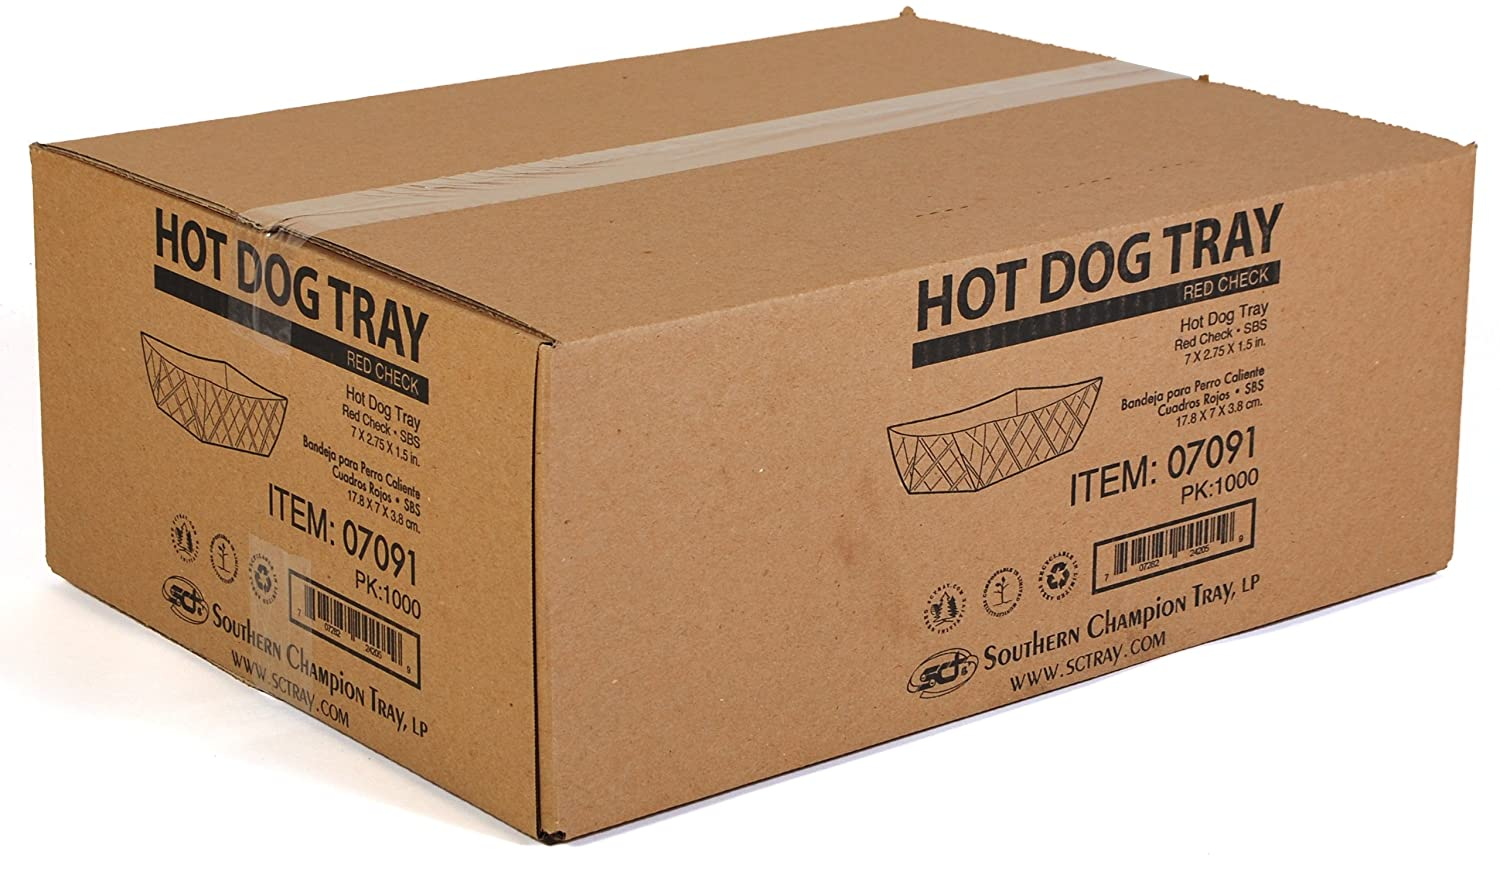 Amazon.com: Southern Champion Tray 07091 Paperboard Red Check Hot Dog Tray, 7